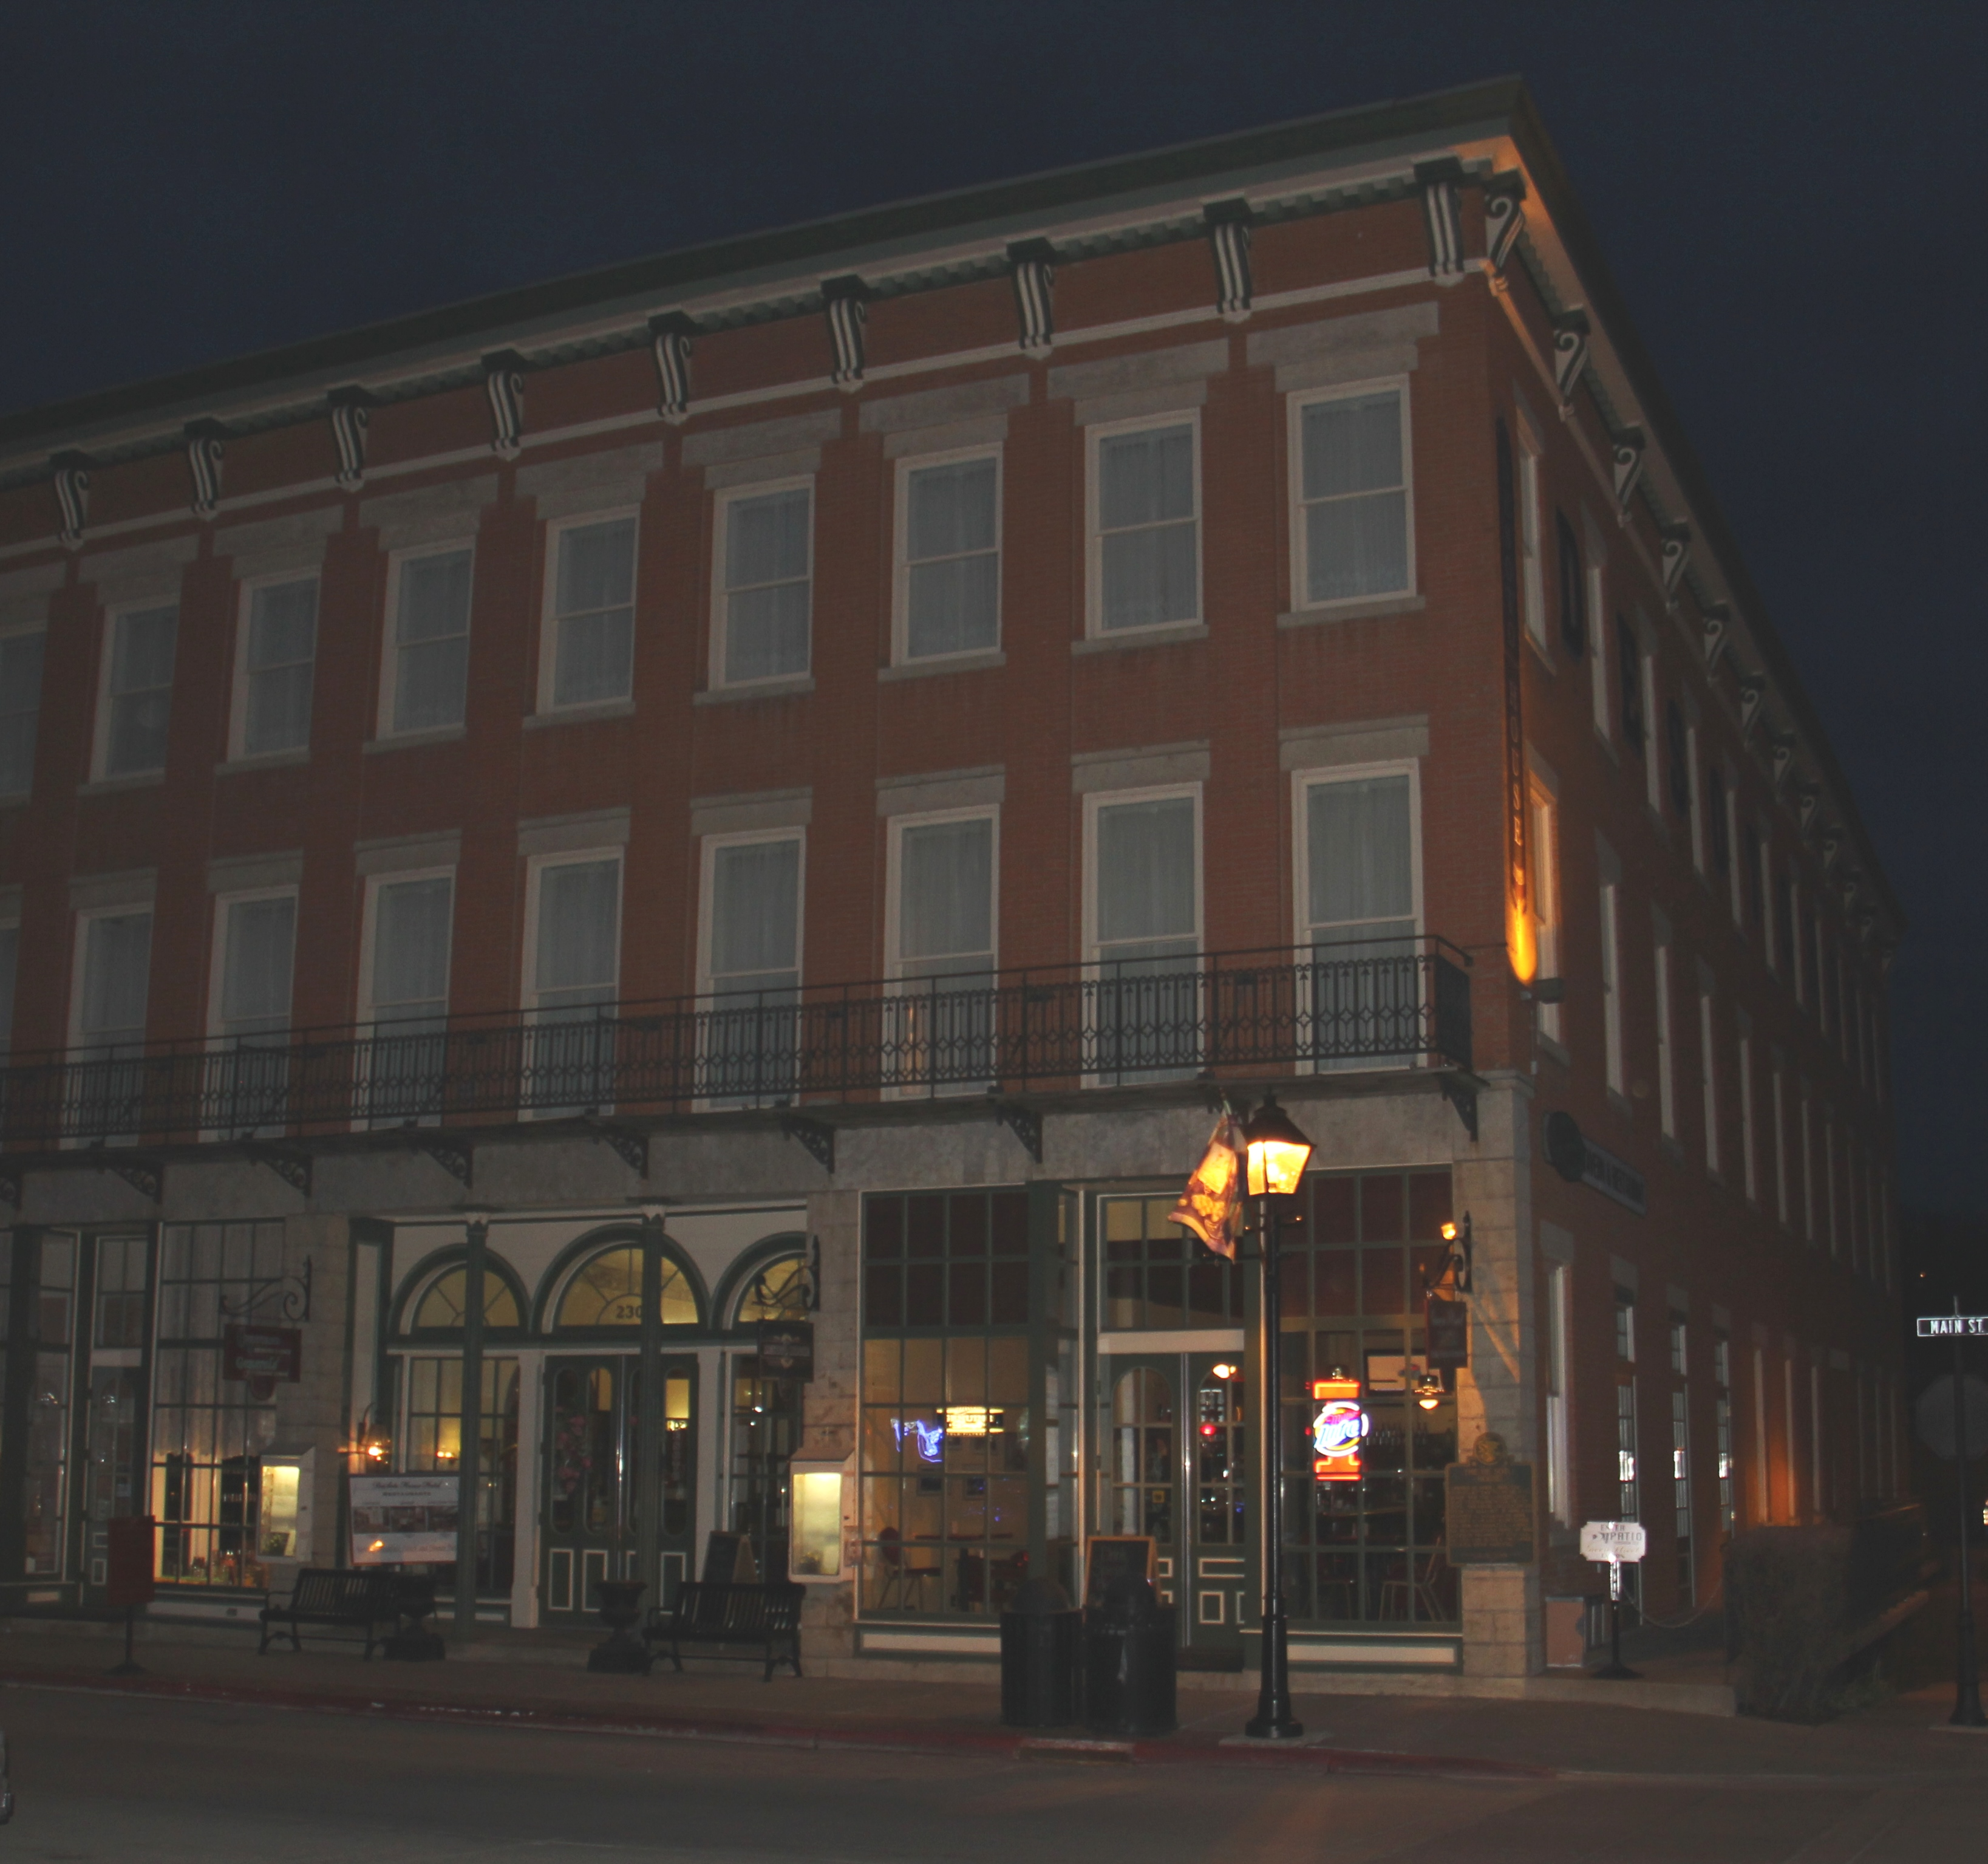 index luxury private bestwesternlincolninn lincoln il global club hotels view best inn in western hotel